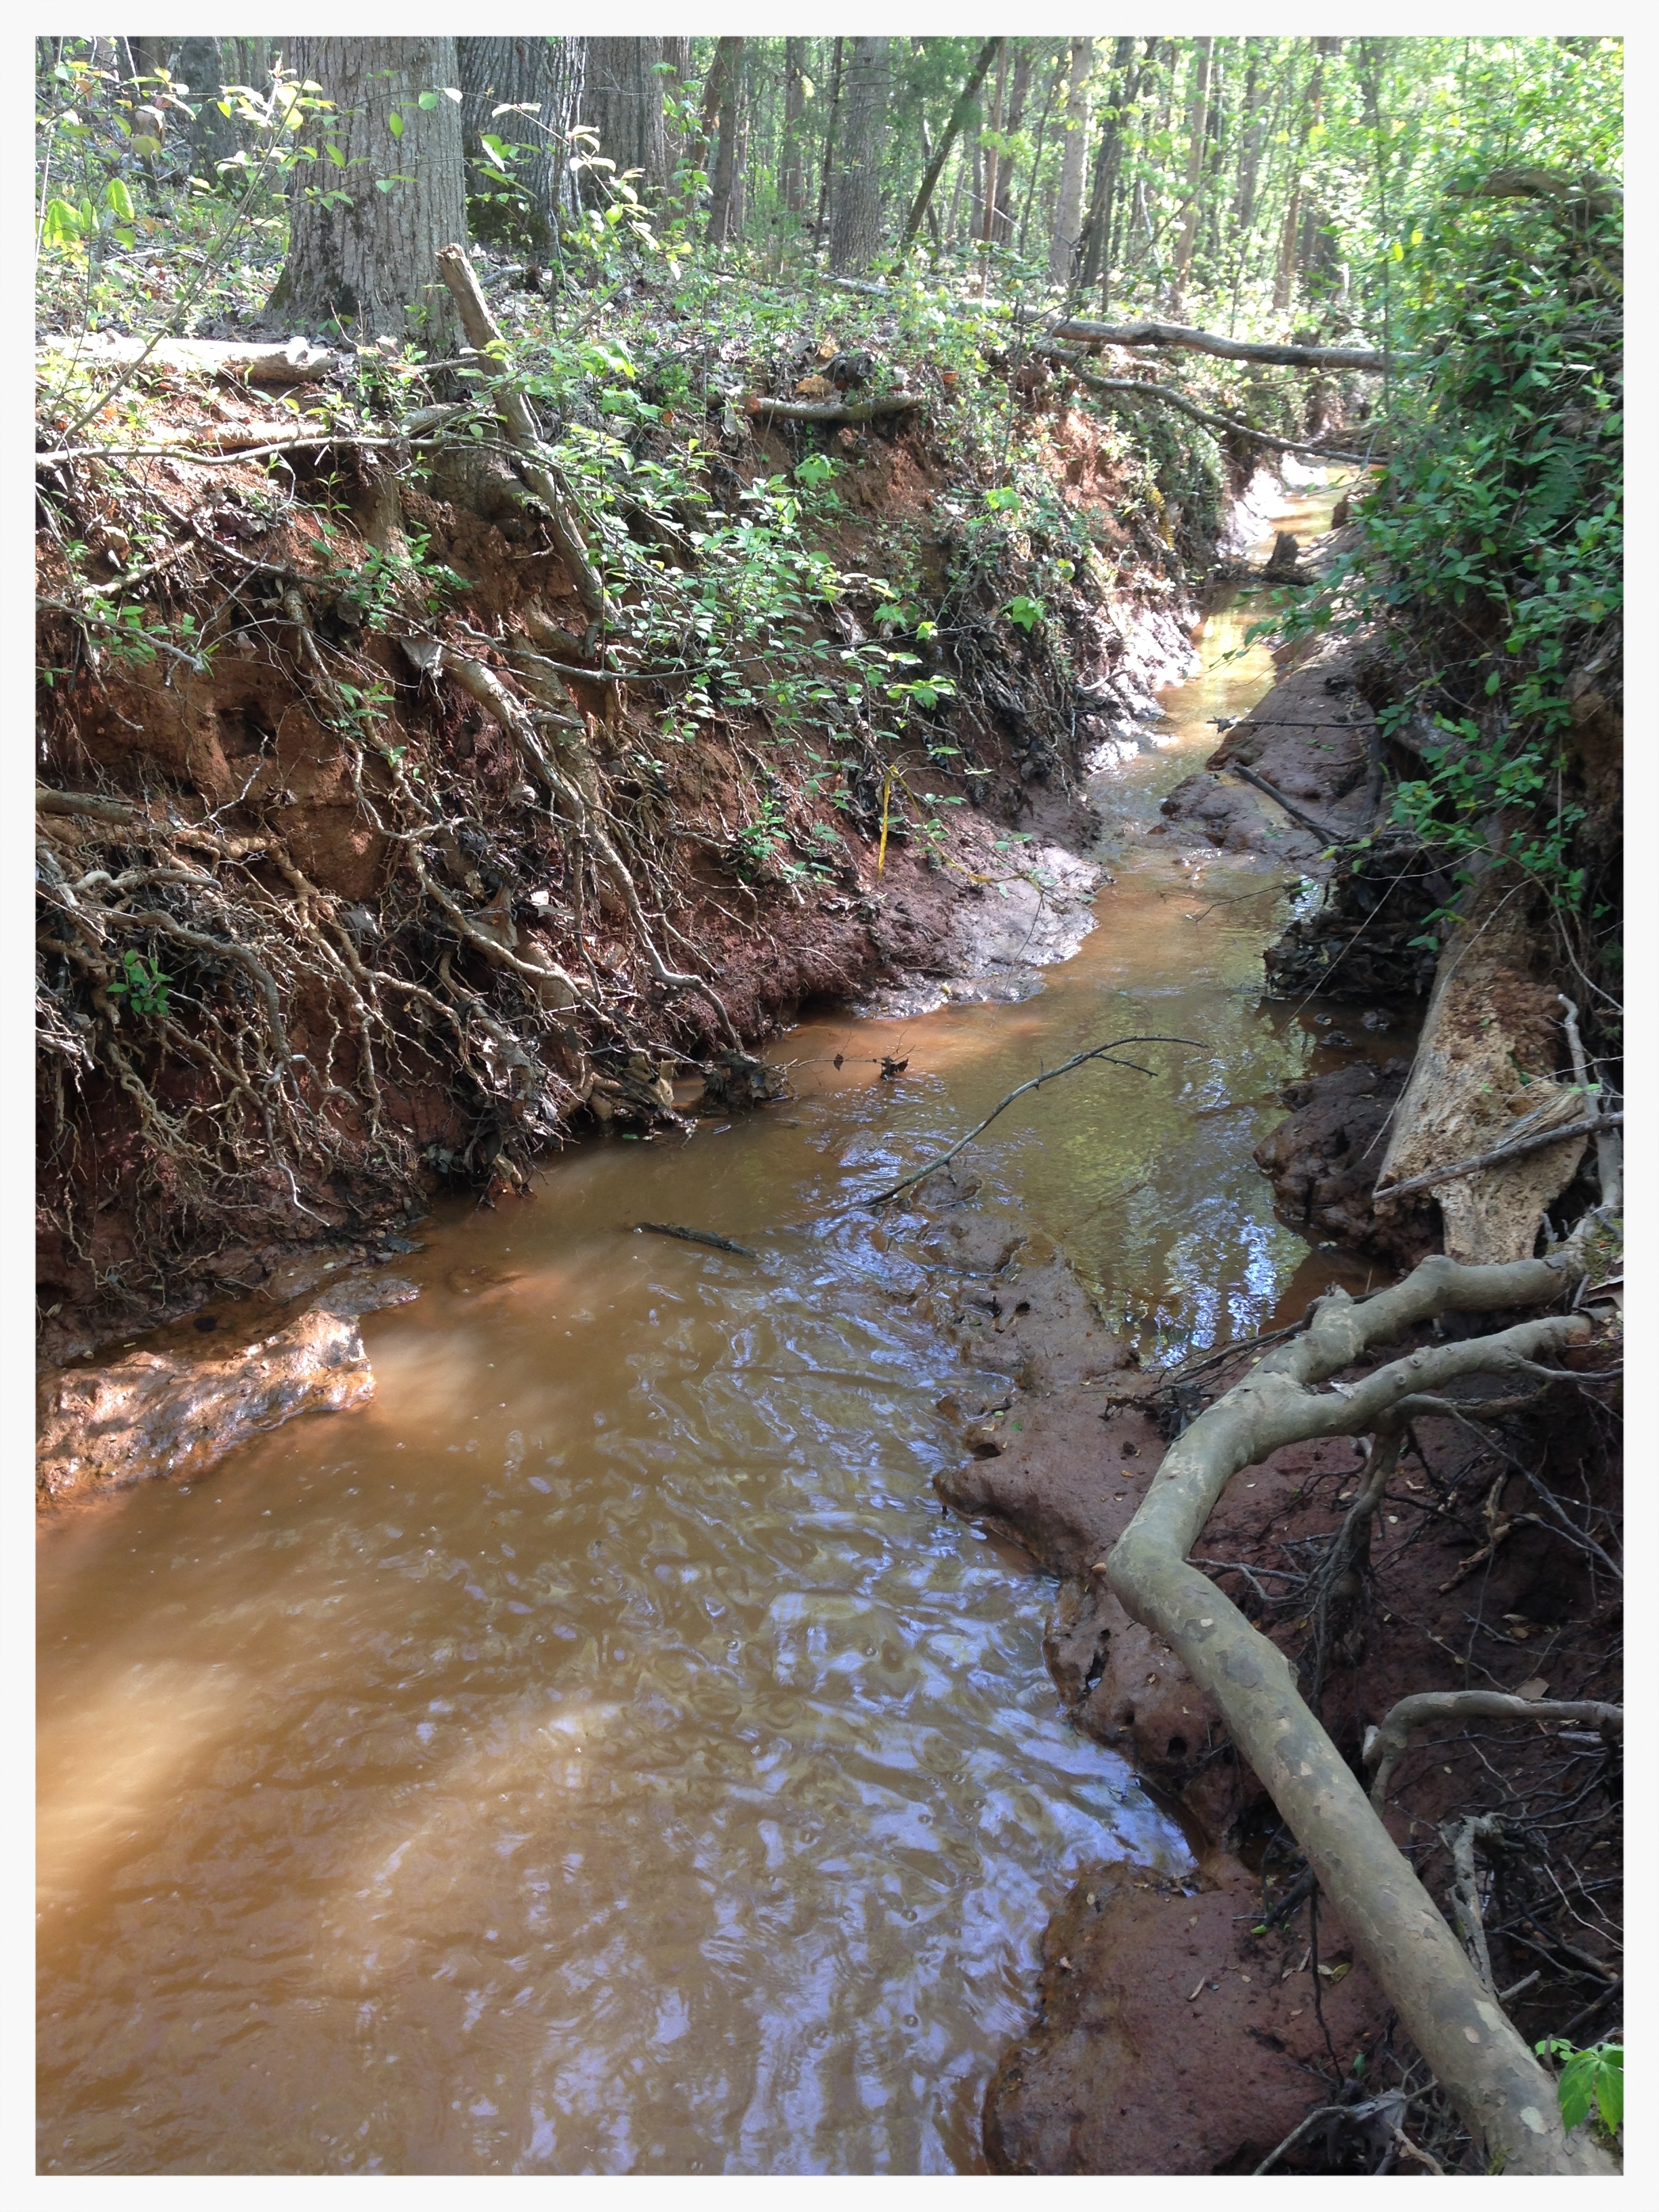 Downstream of head cut, notice the channel incision & eroding banks.